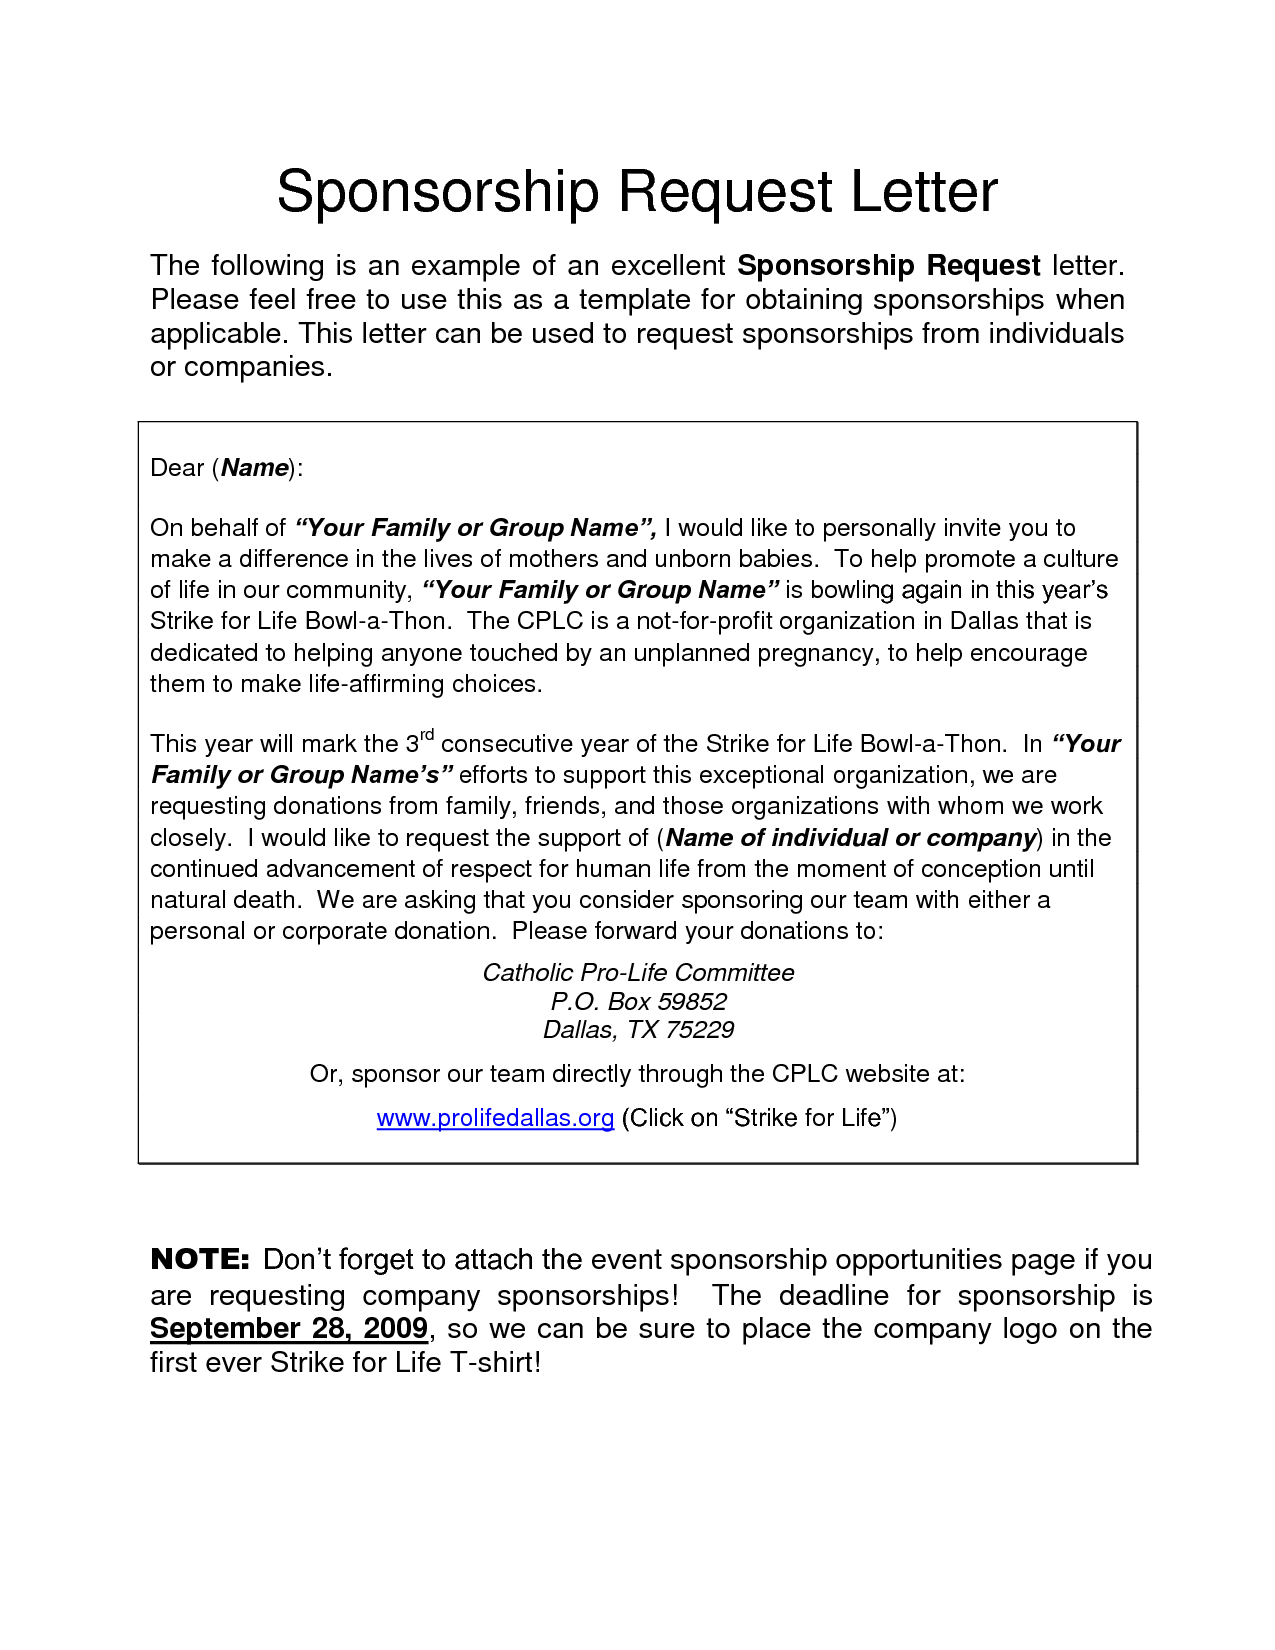 Corporate sponsorship request letter charity donation free sample corporate sponsorship request letter charity donation free sample letters spiritdancerdesigns